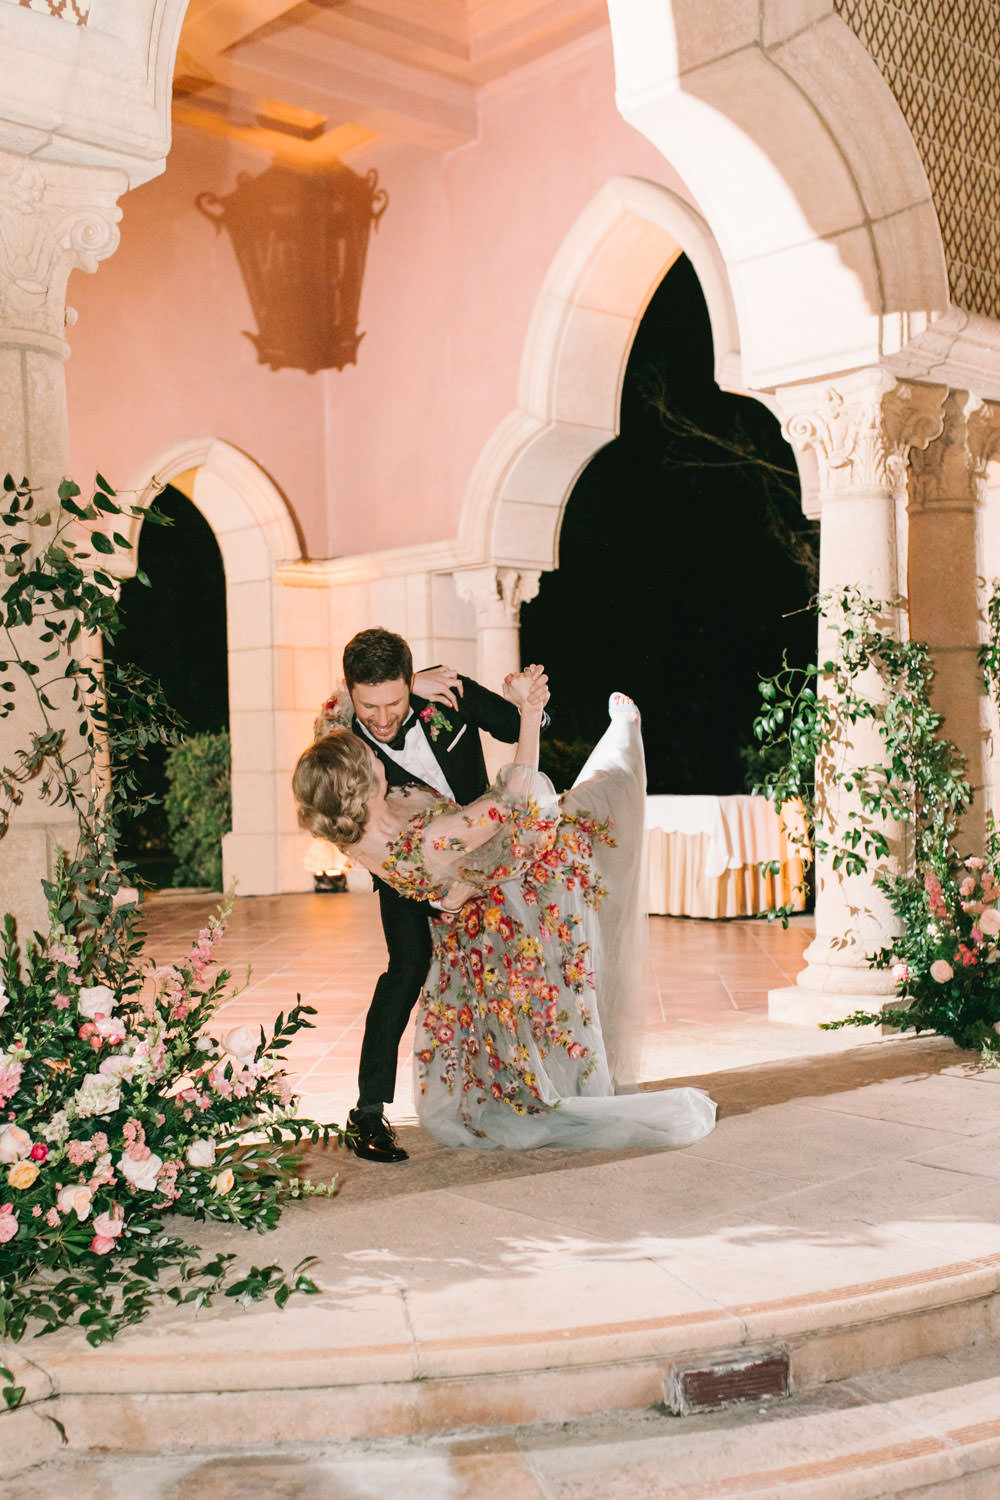 Bride and groom first dance on a stage with columns covered in climbing smilax with arrangement at the bottom consisting of roses, ranunculus, daffodils, peonies, and sweet peas. Bride wearing colorful Marchesa wedding gown with blue, pink, yellow, green, and orange floral appliques. A Wedding Photographer's Fairmont Grand Del Mar Wedding